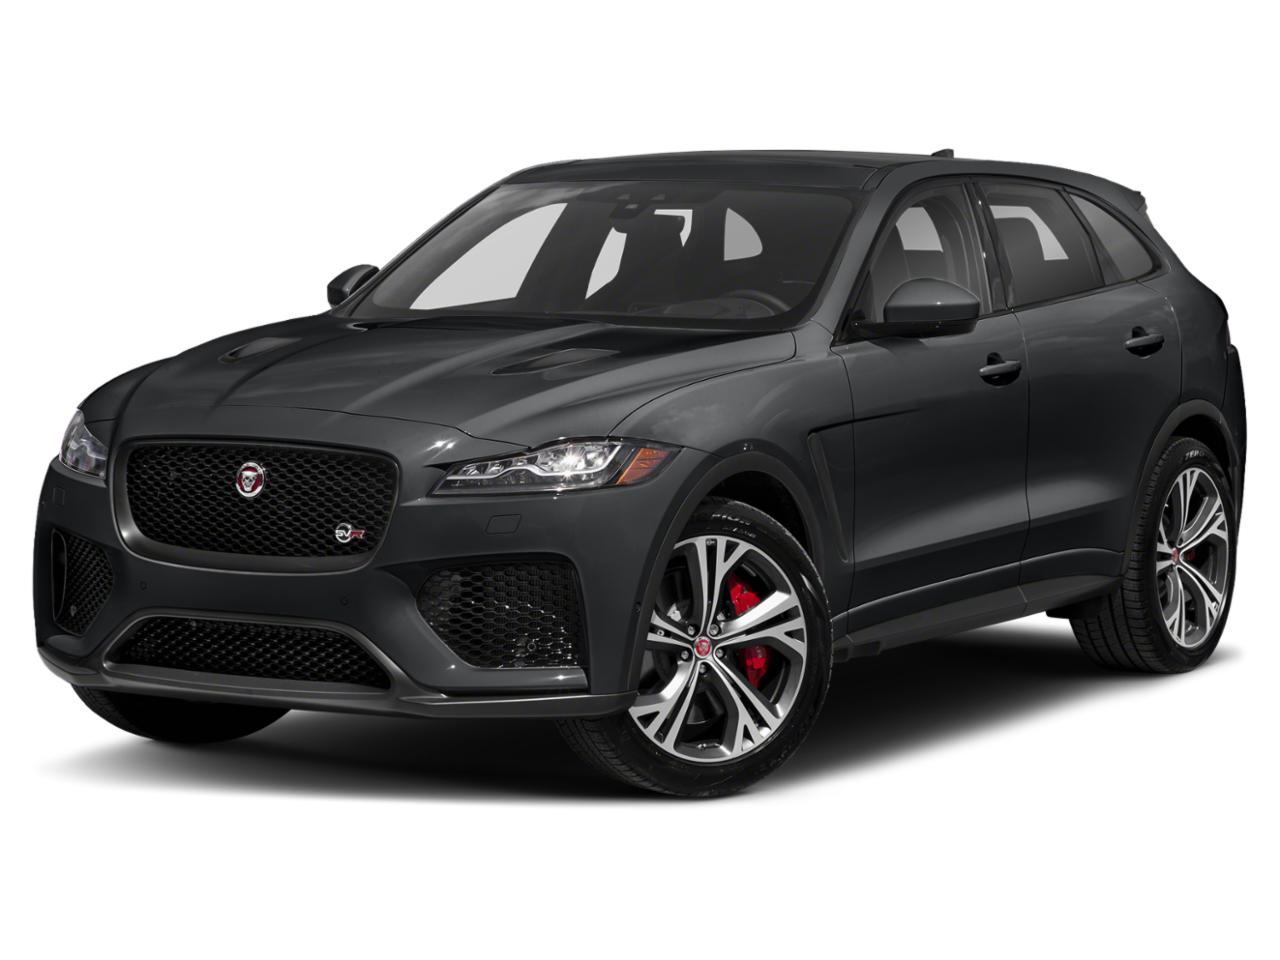 2020 Jaguar F-PACE Vehicle Photo in Appleton, WI 54913